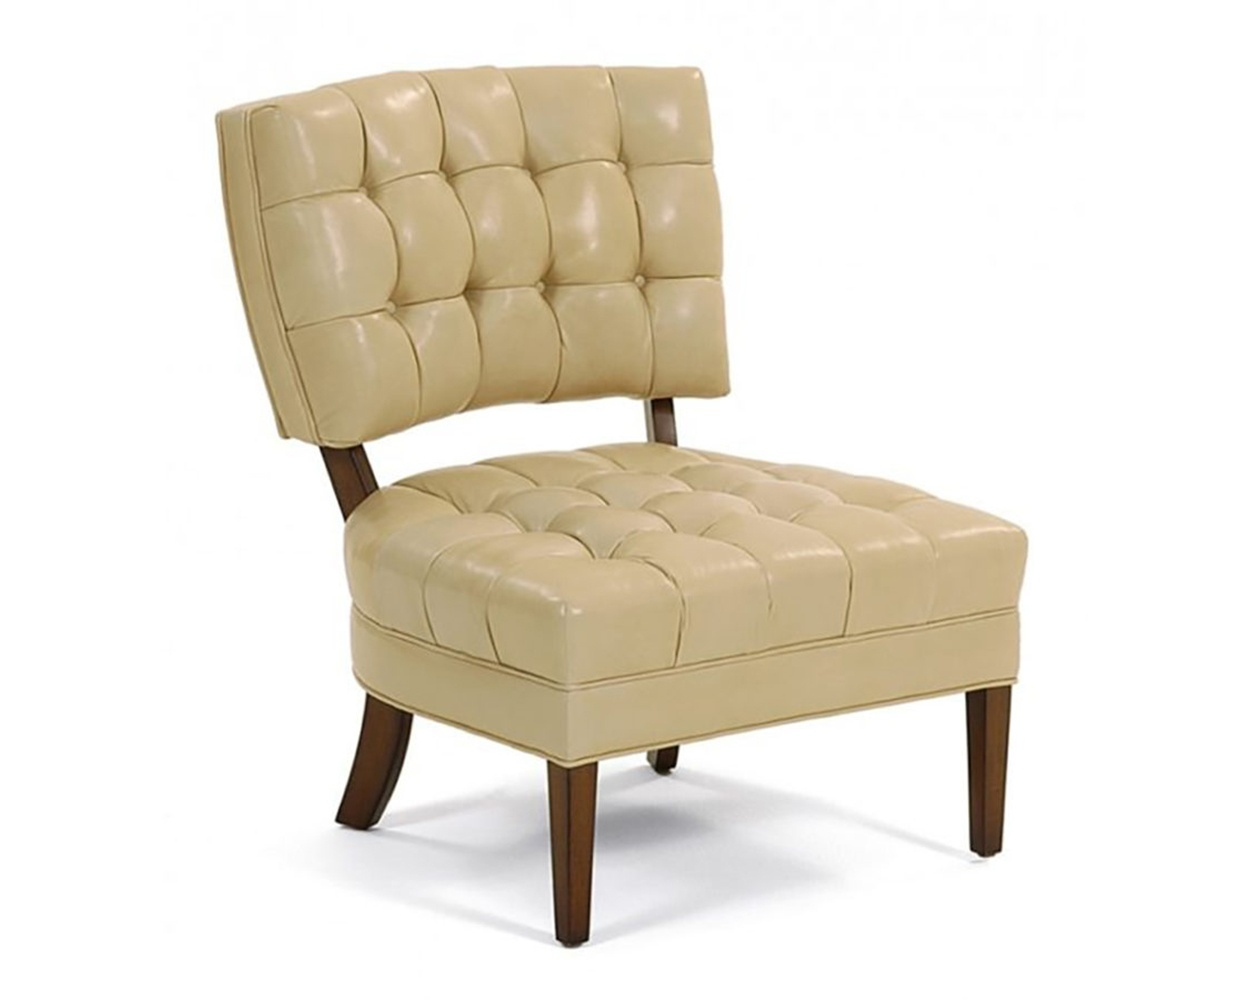 2160-Tutle-Chair-763×826-1-610×660-900×900